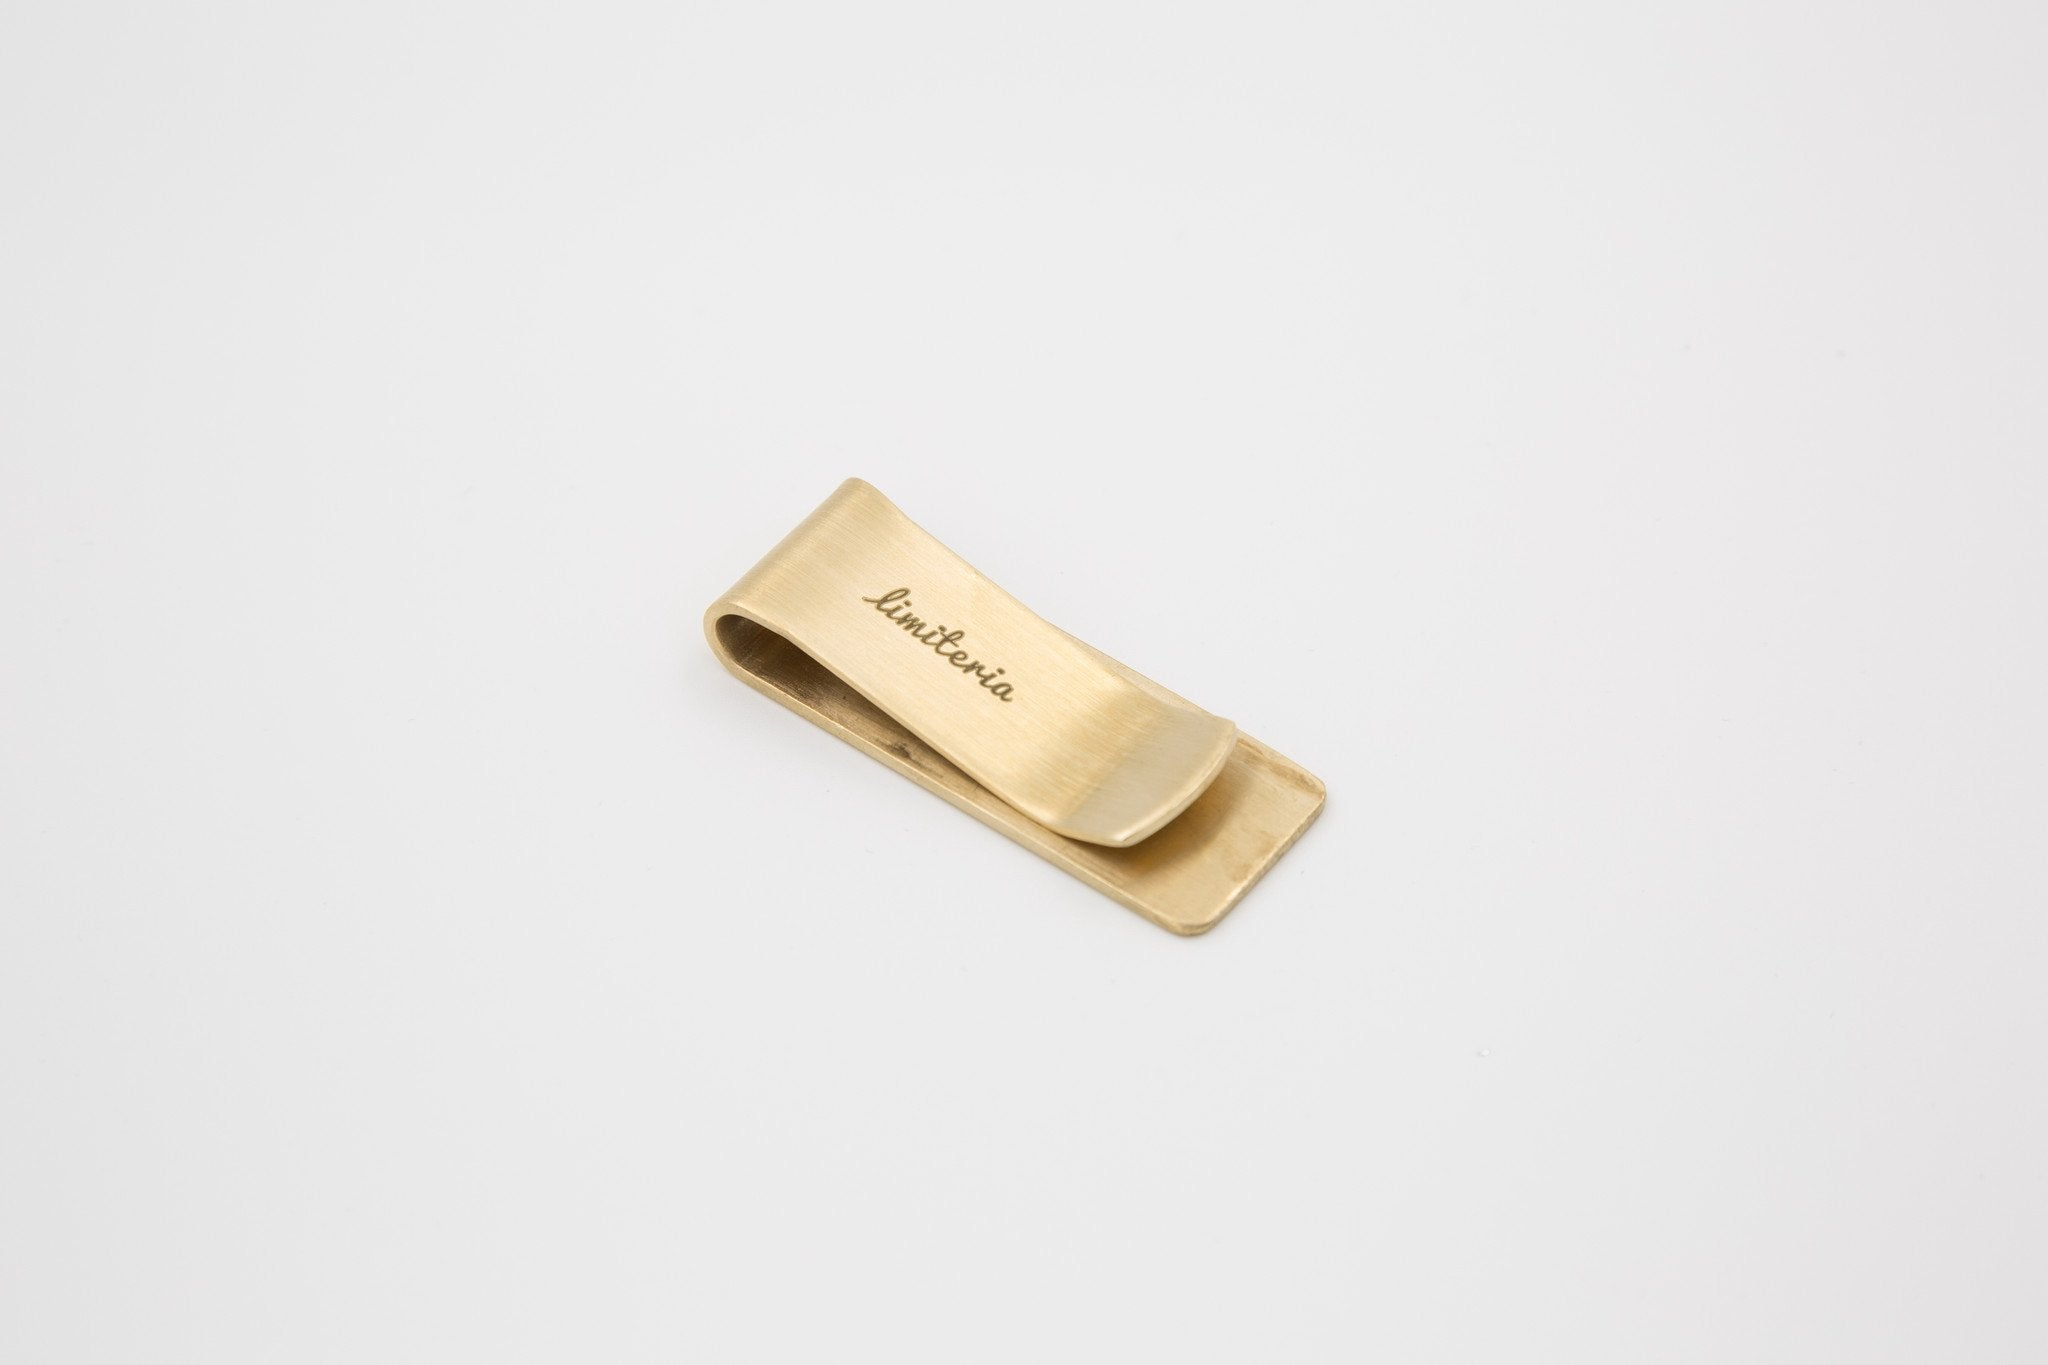 Brass Money Clip - Bold - Money Clips - Limiteria - Naiise